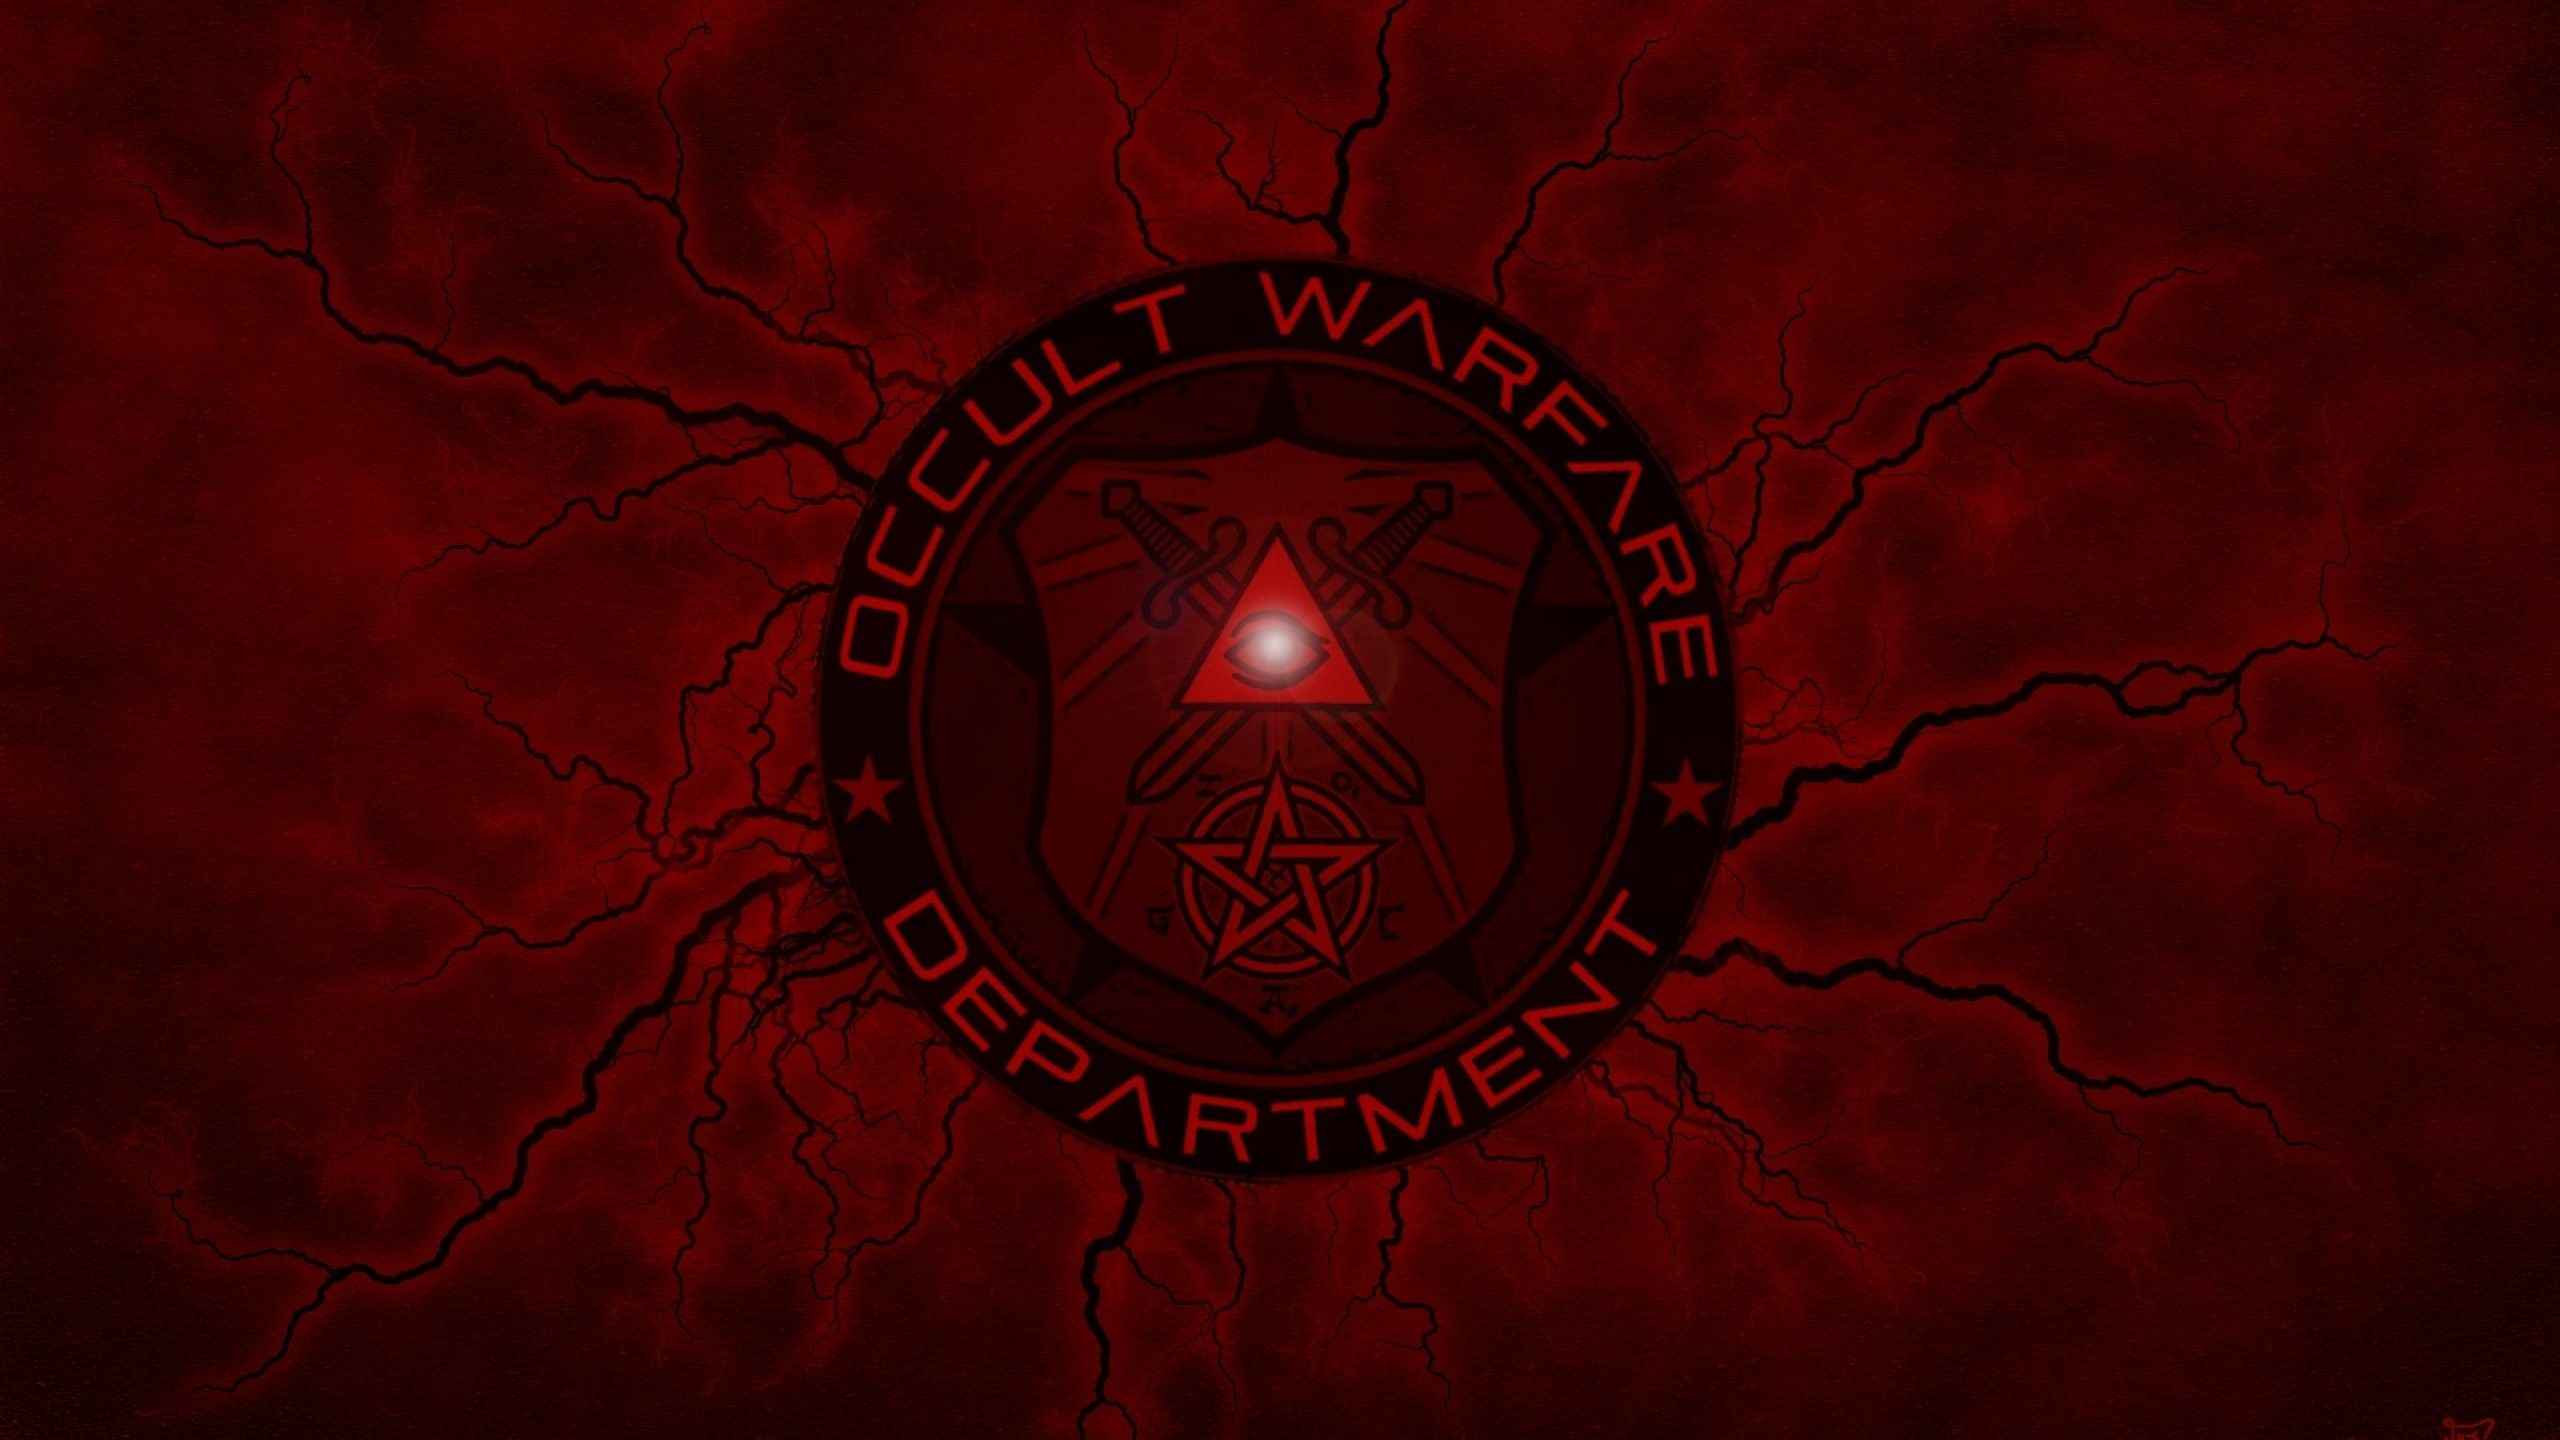 54 Hd Satanic Wallpapers On Wallpaperplay Witch Wallpaper